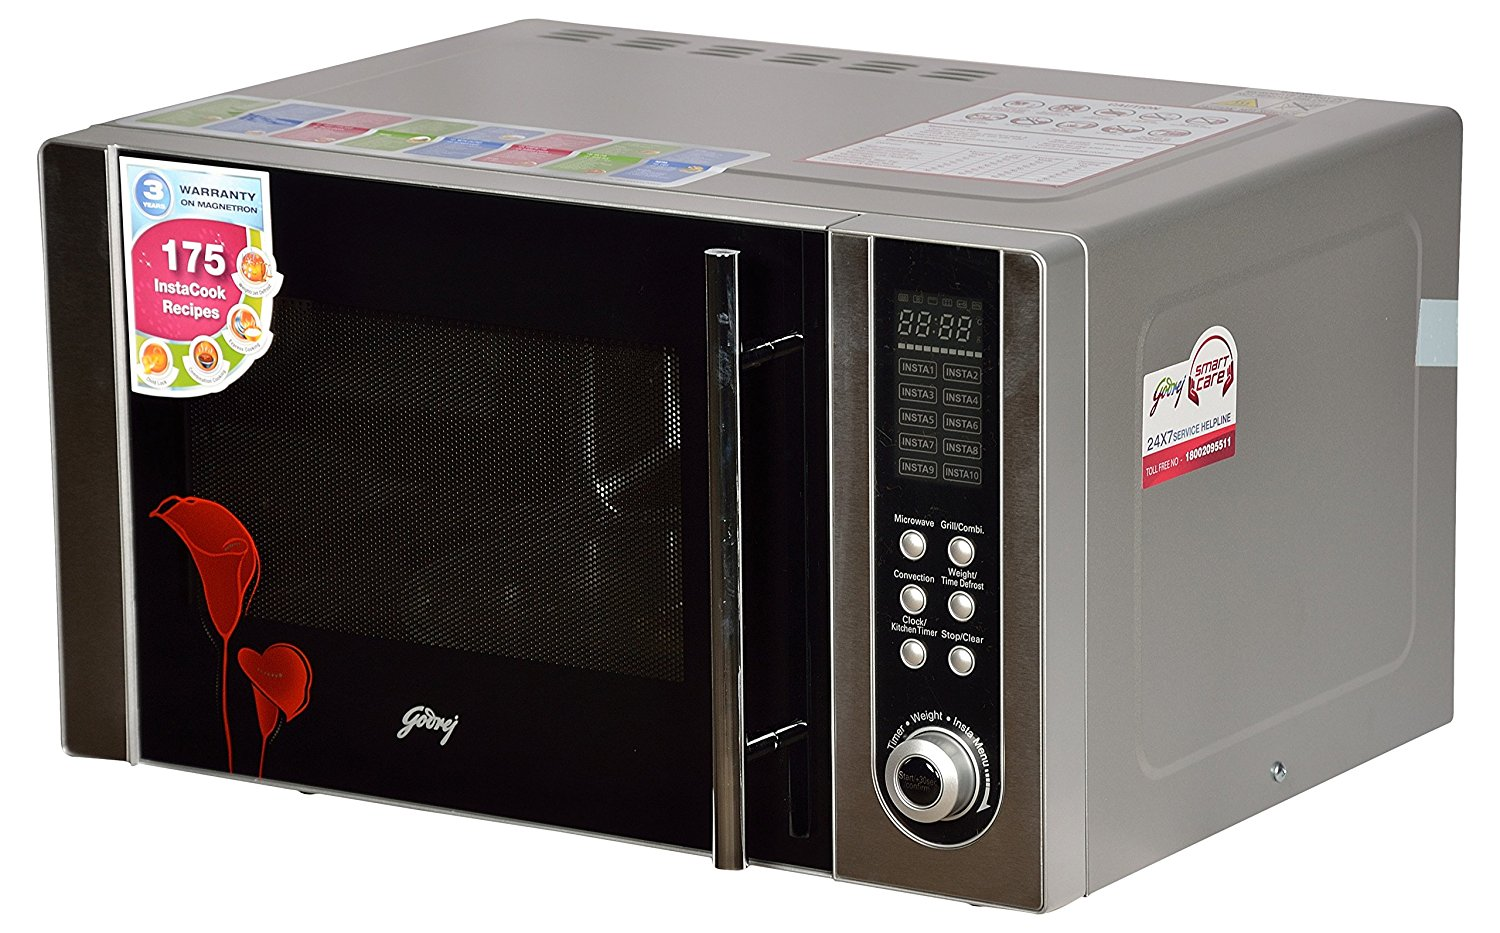 23 Liters Godrej convection microwave unit